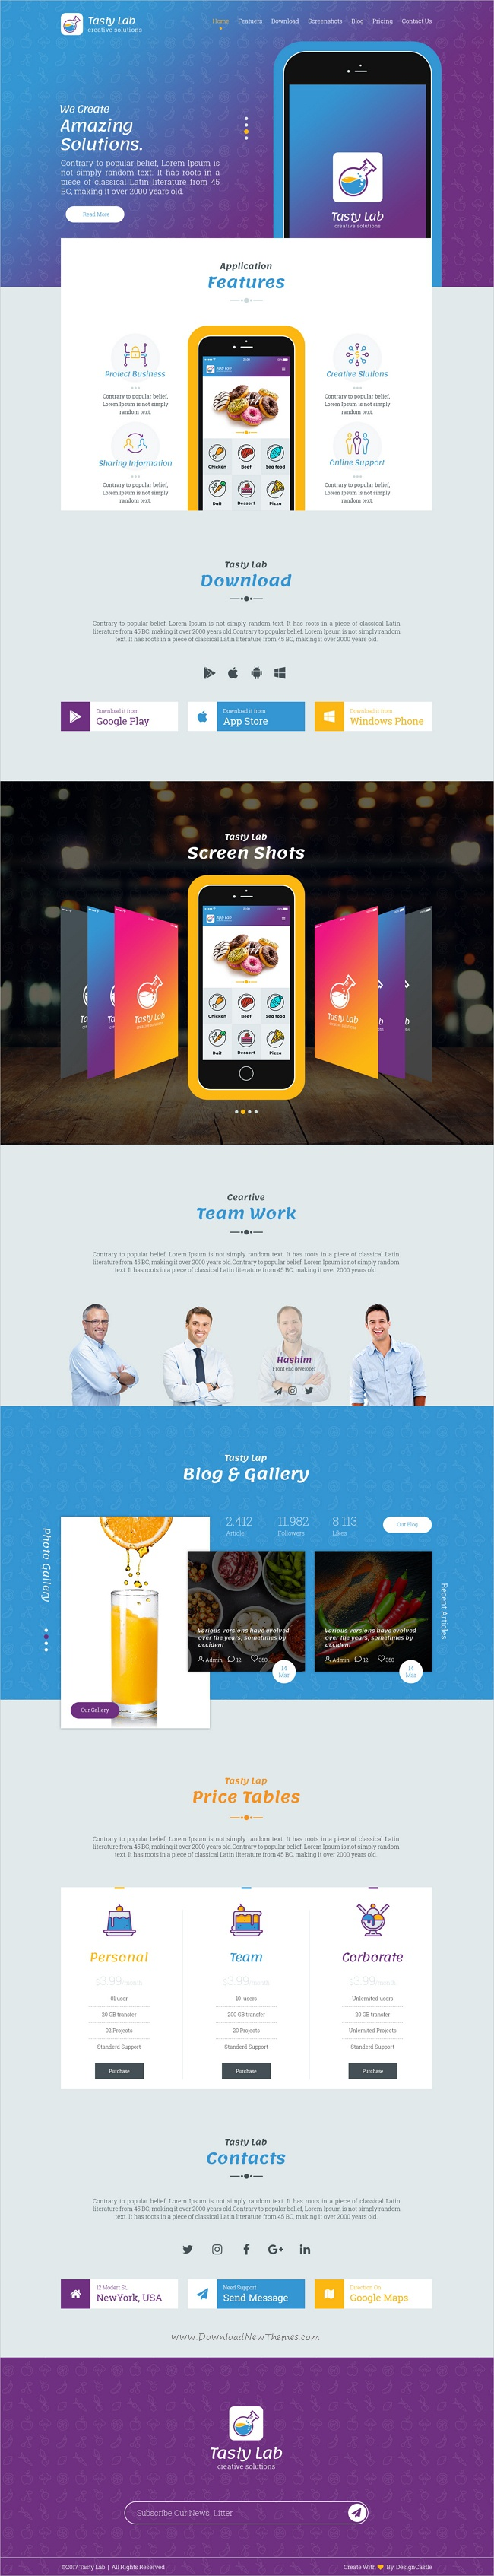 Tastylab is  clean and creative design psd template for mobile app landingpage website download now also application landing page applications rh pinterest